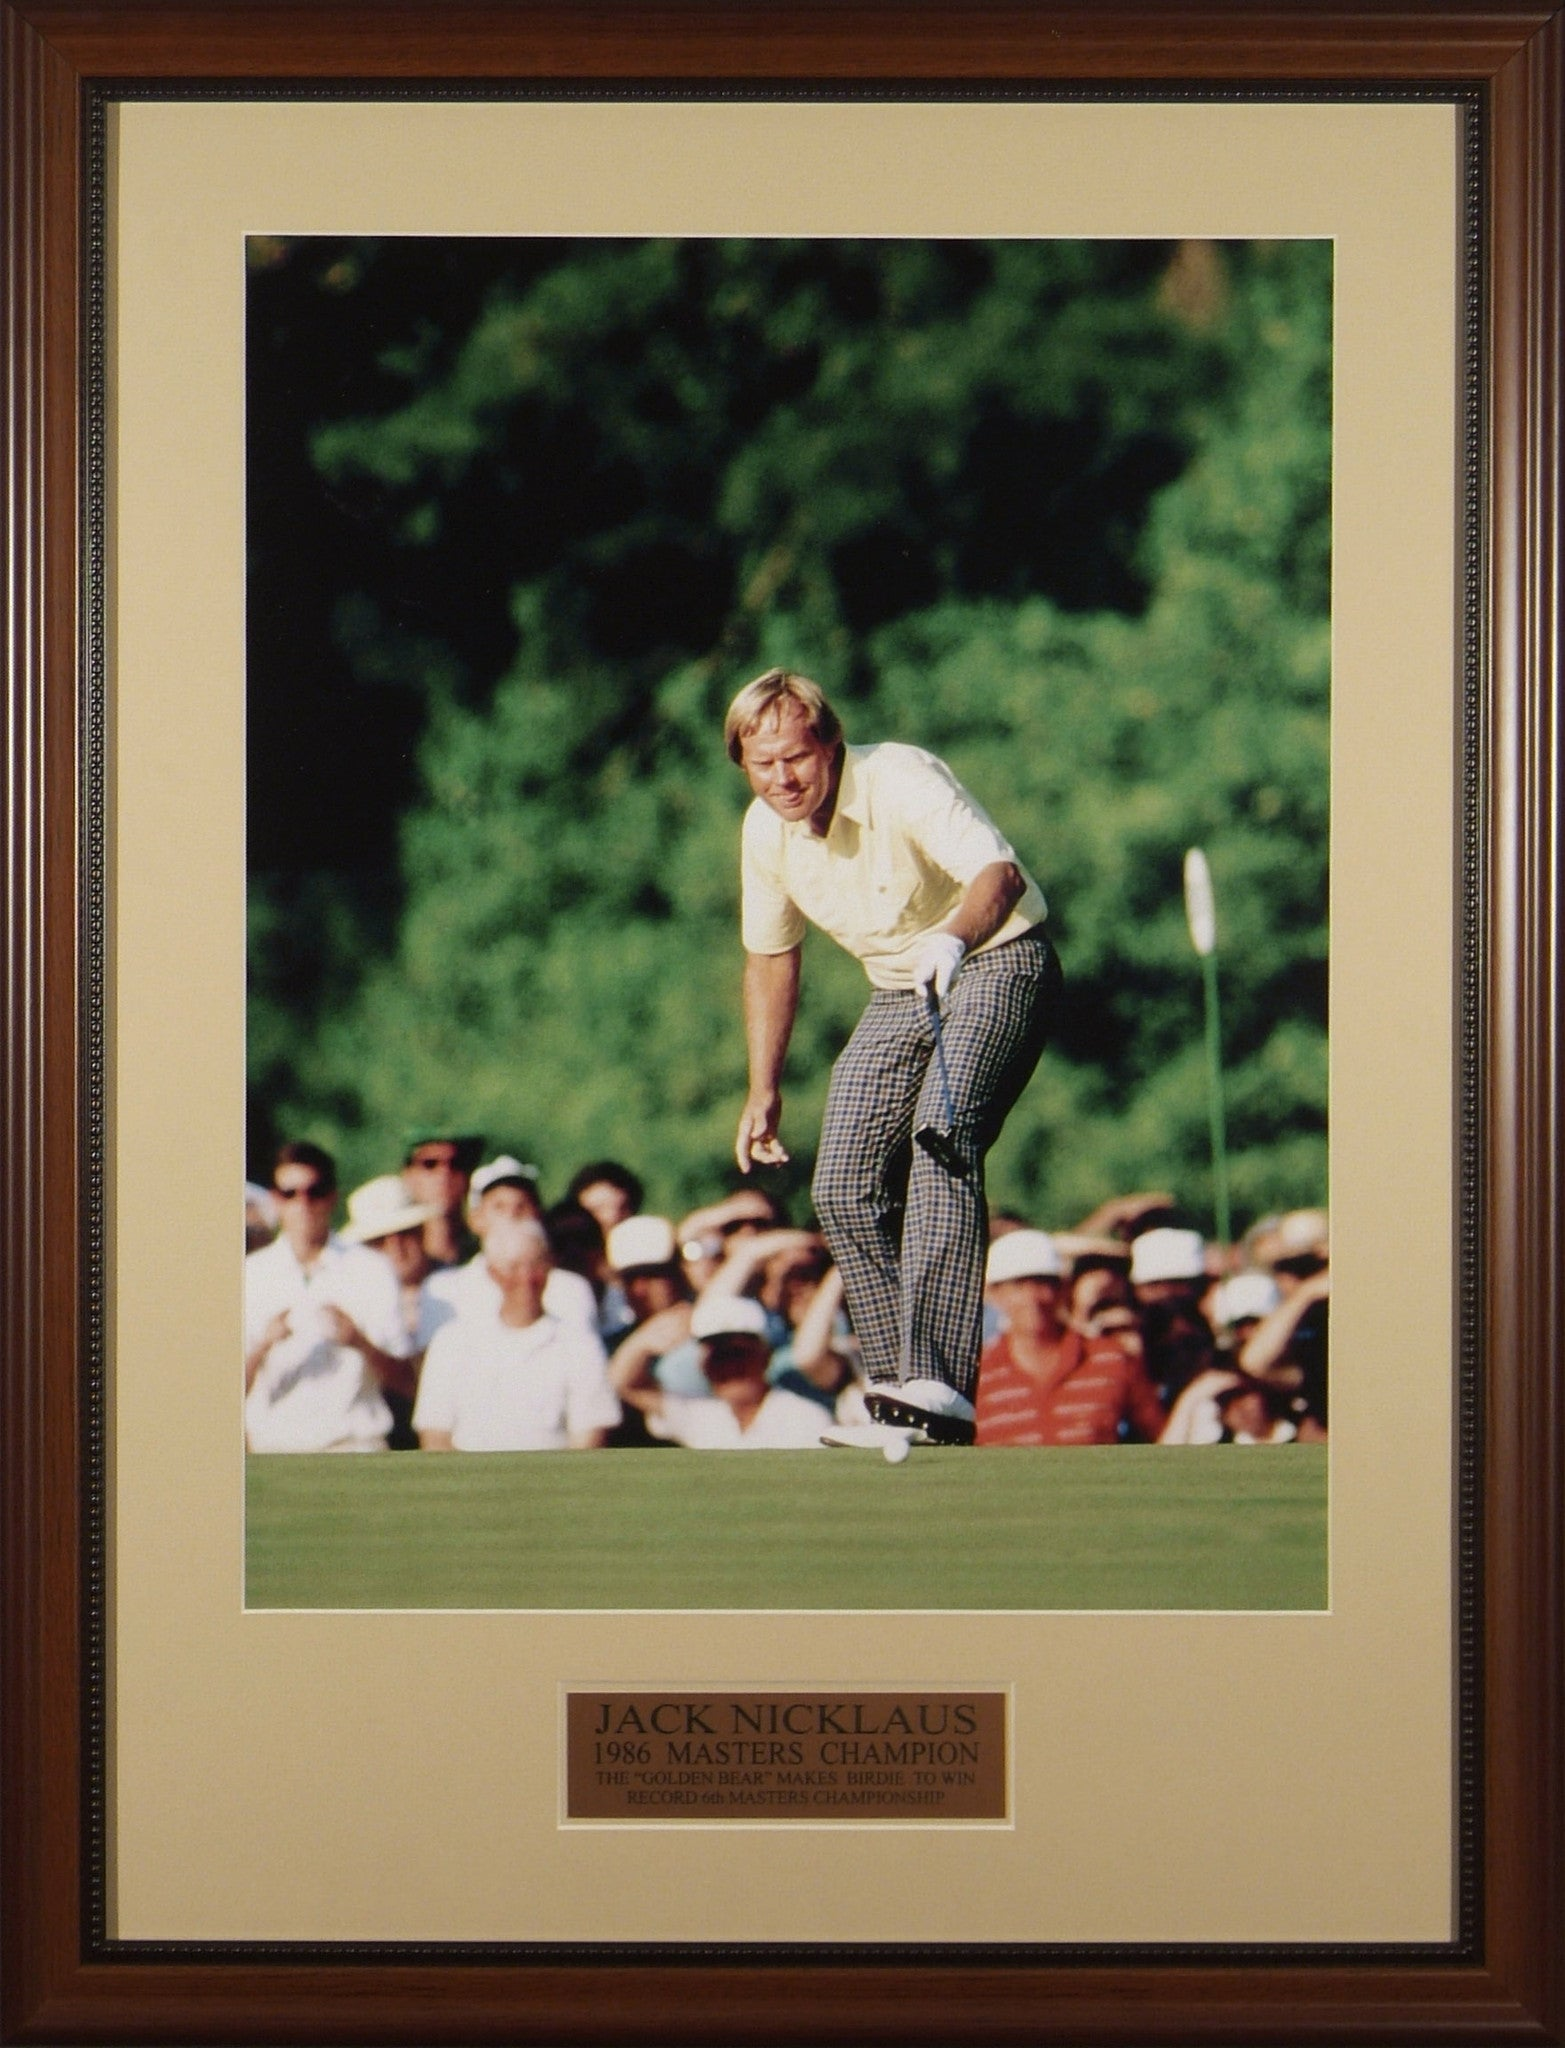 Jack Nicklaus 1986 Masters #17 Putt